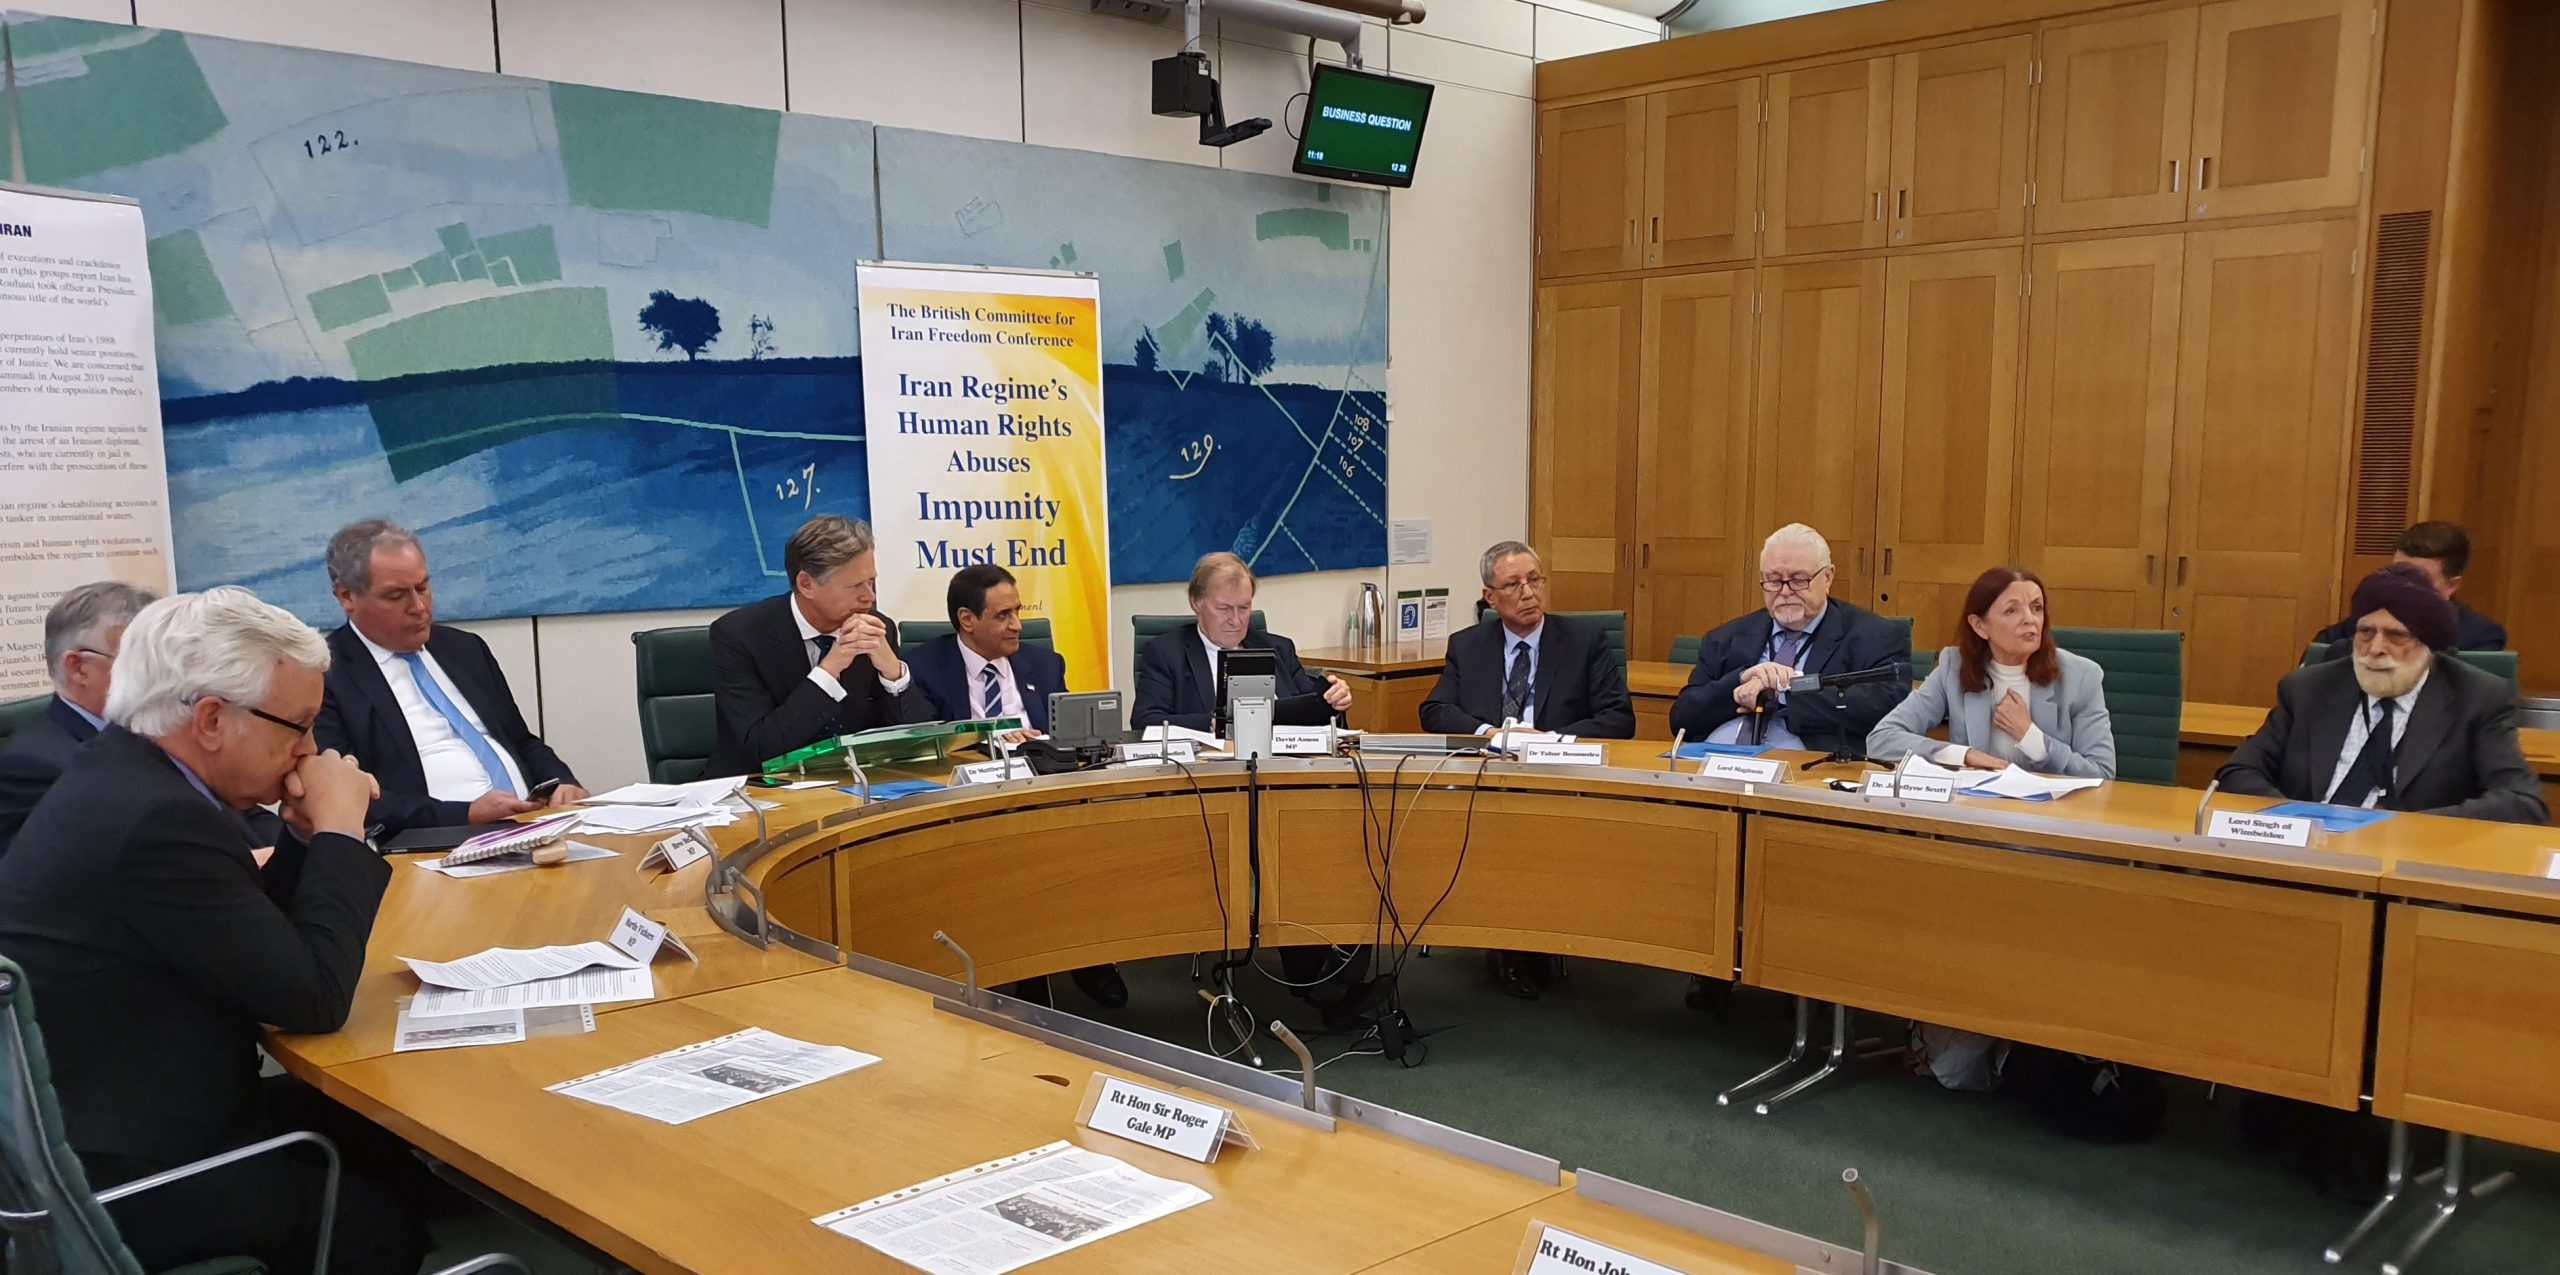 Conference on situation of human rights in Iran, held at the house of commons- October 17, 2019